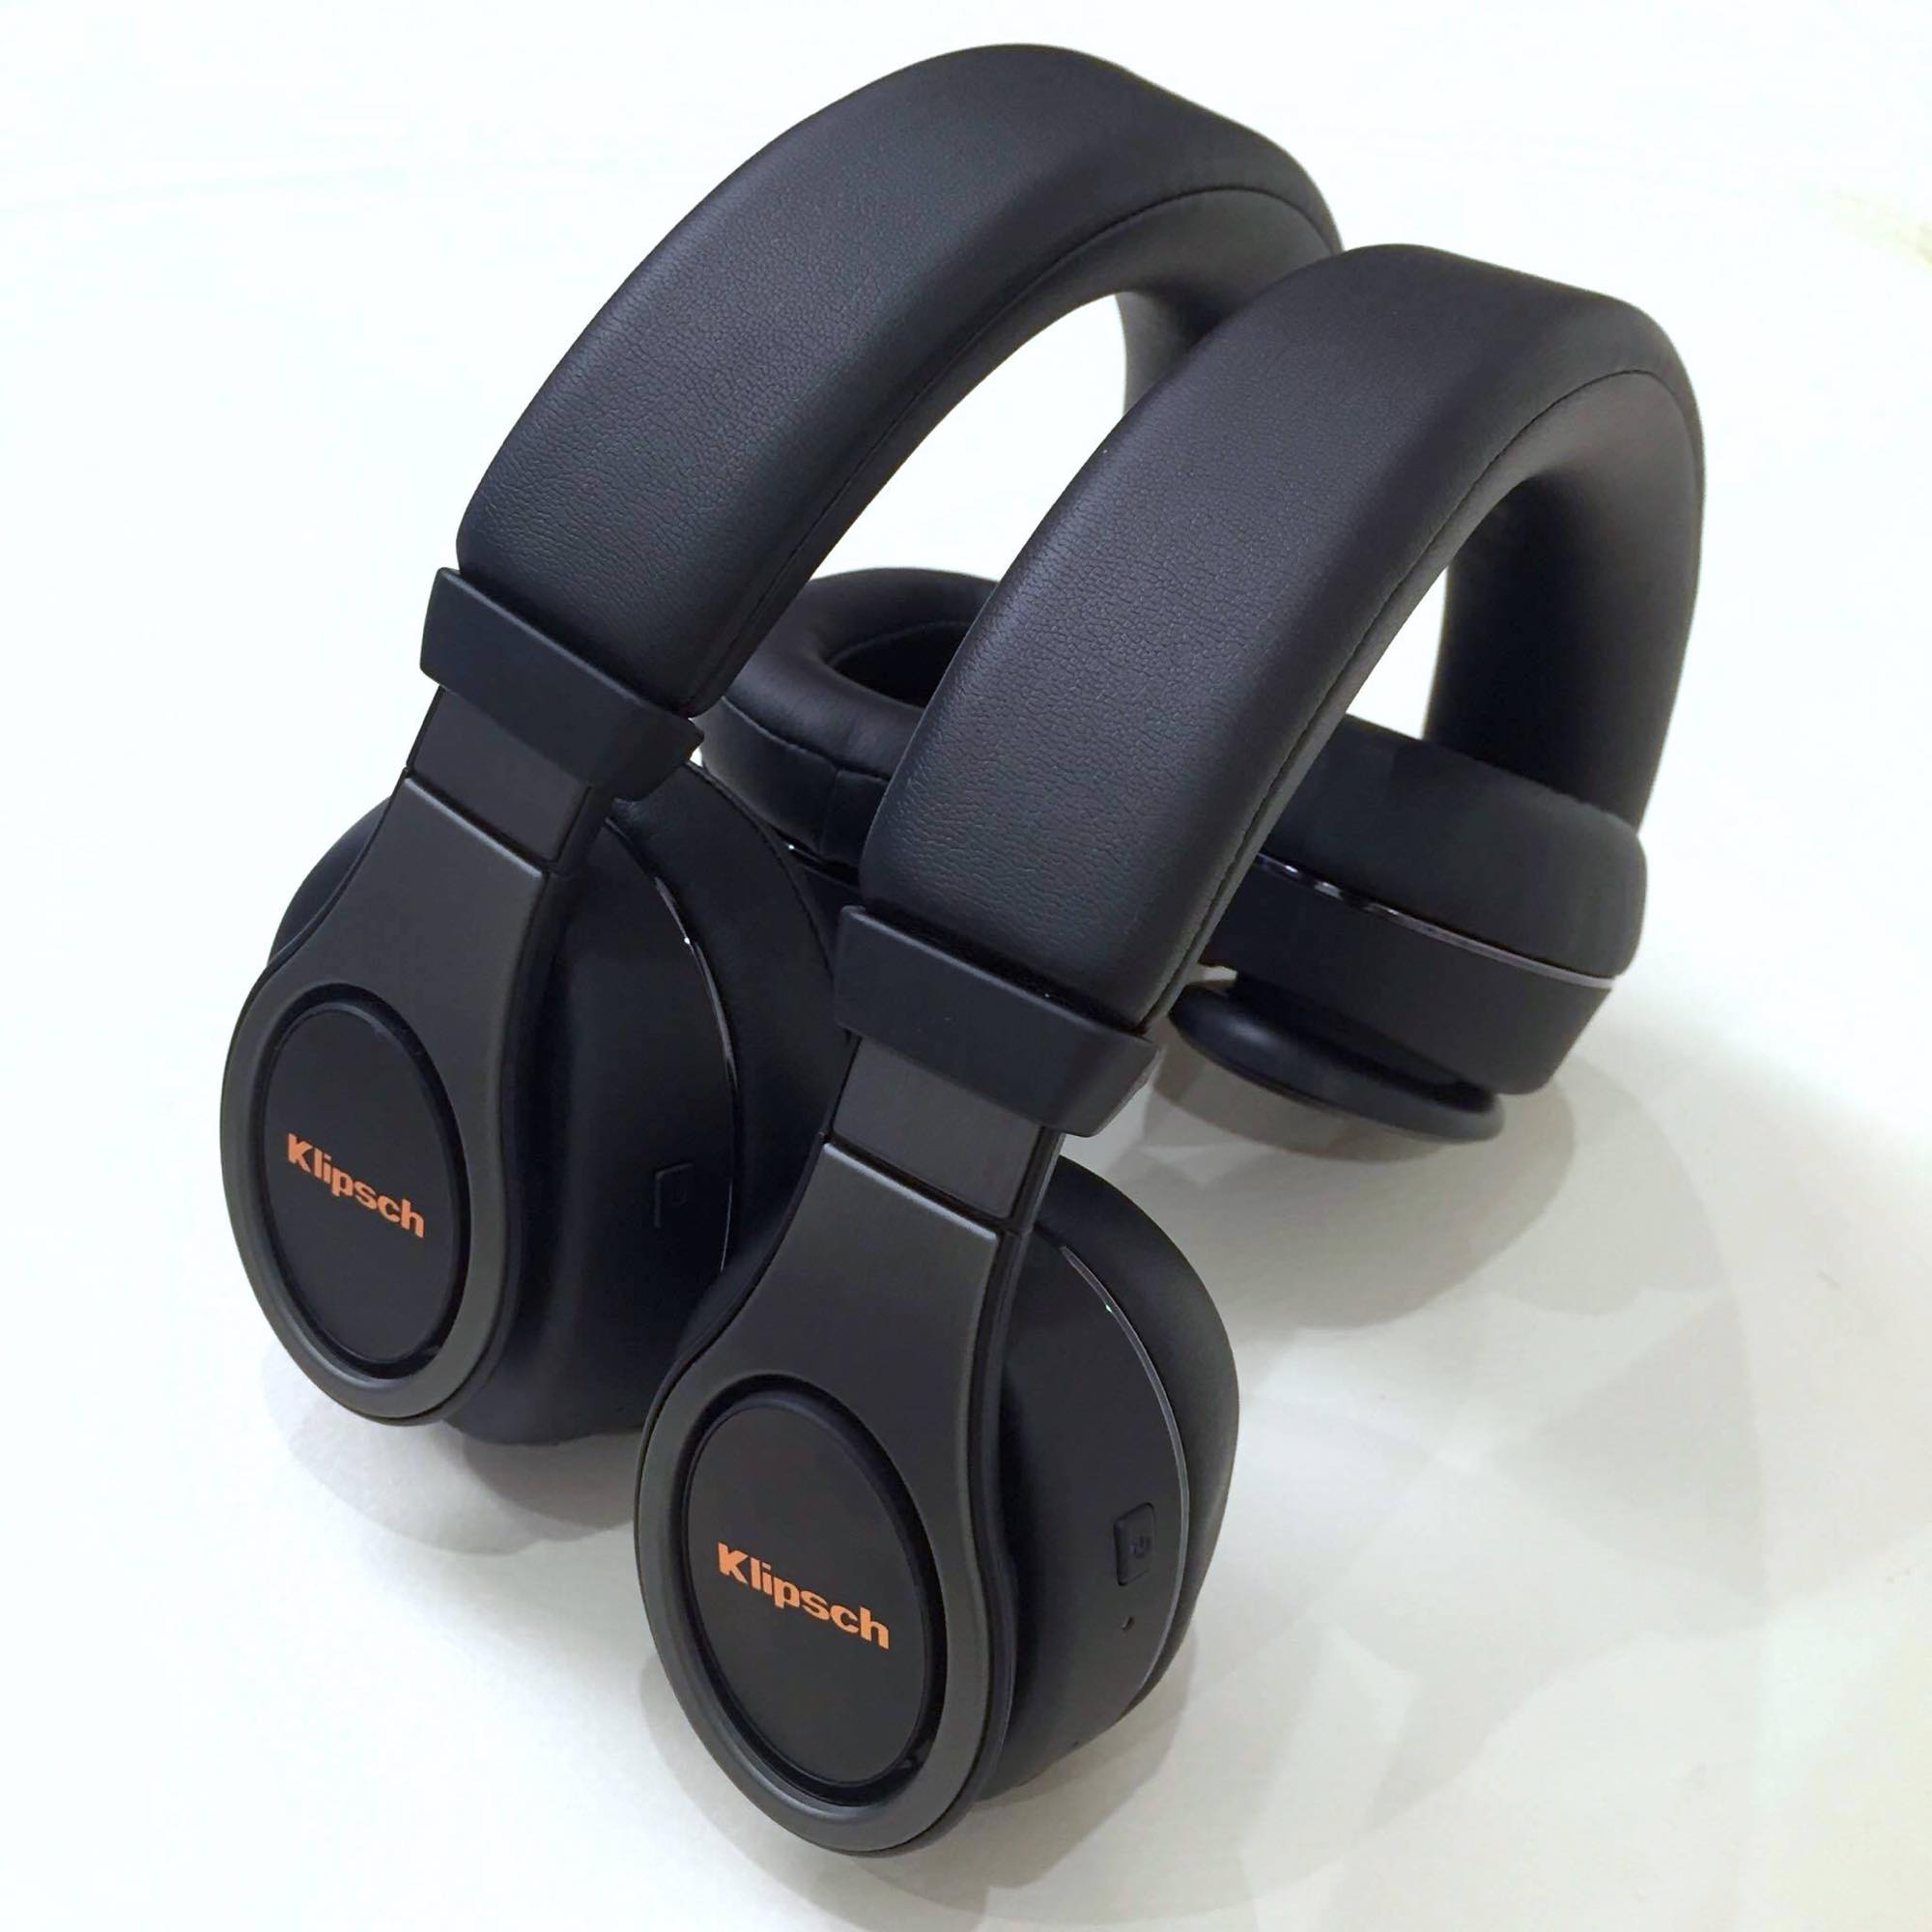 klipsch-headphone3